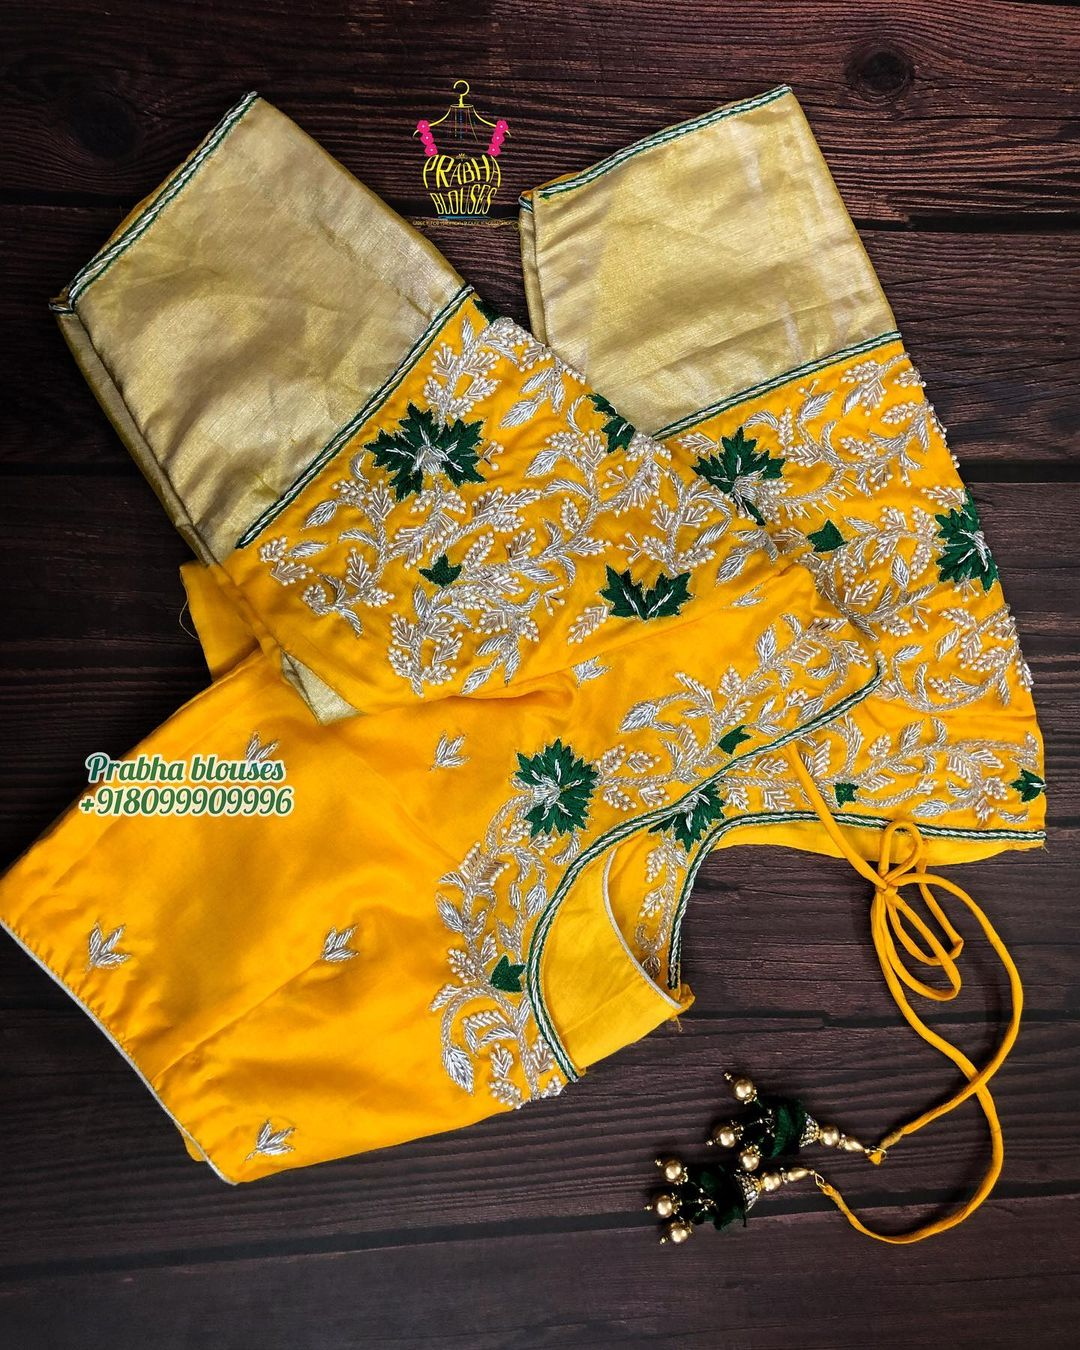 Stunning yellow color designer blouse with floral design hand embroidery gold  and green thread maggam work.  2021-04-10